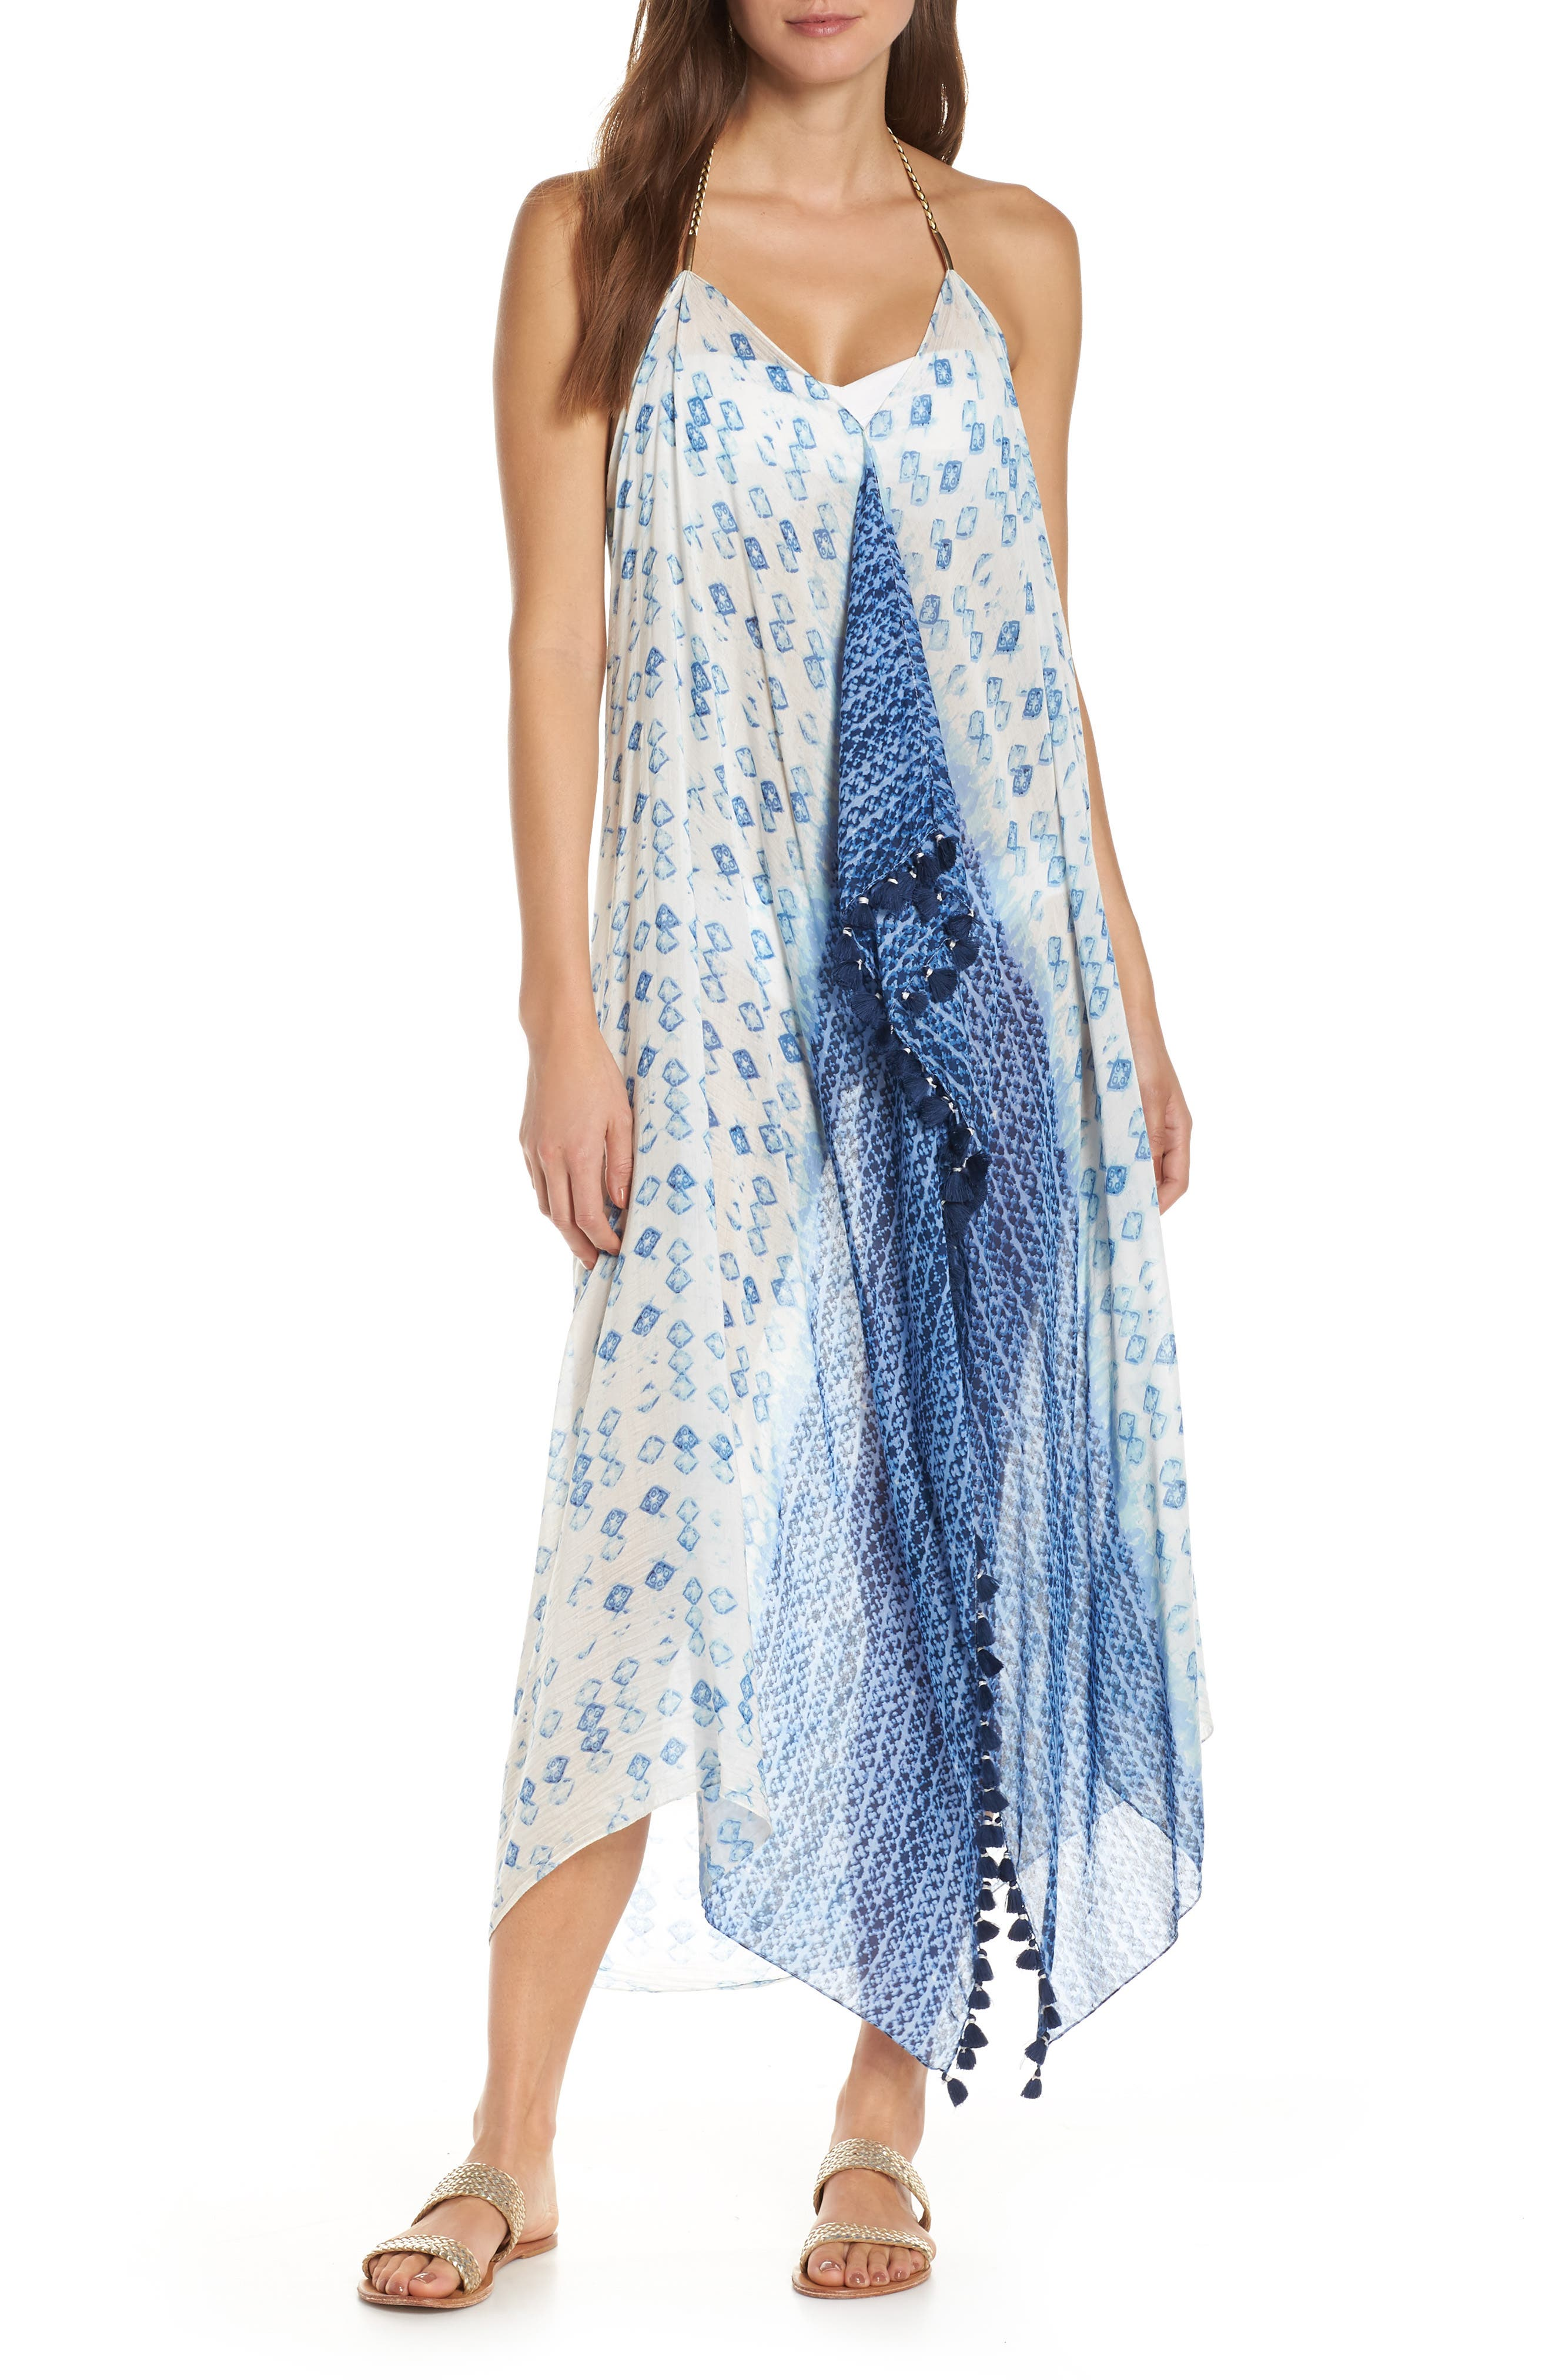 Pool To Party Beach To Street Cover-Up Dress, Size One Size - Blue